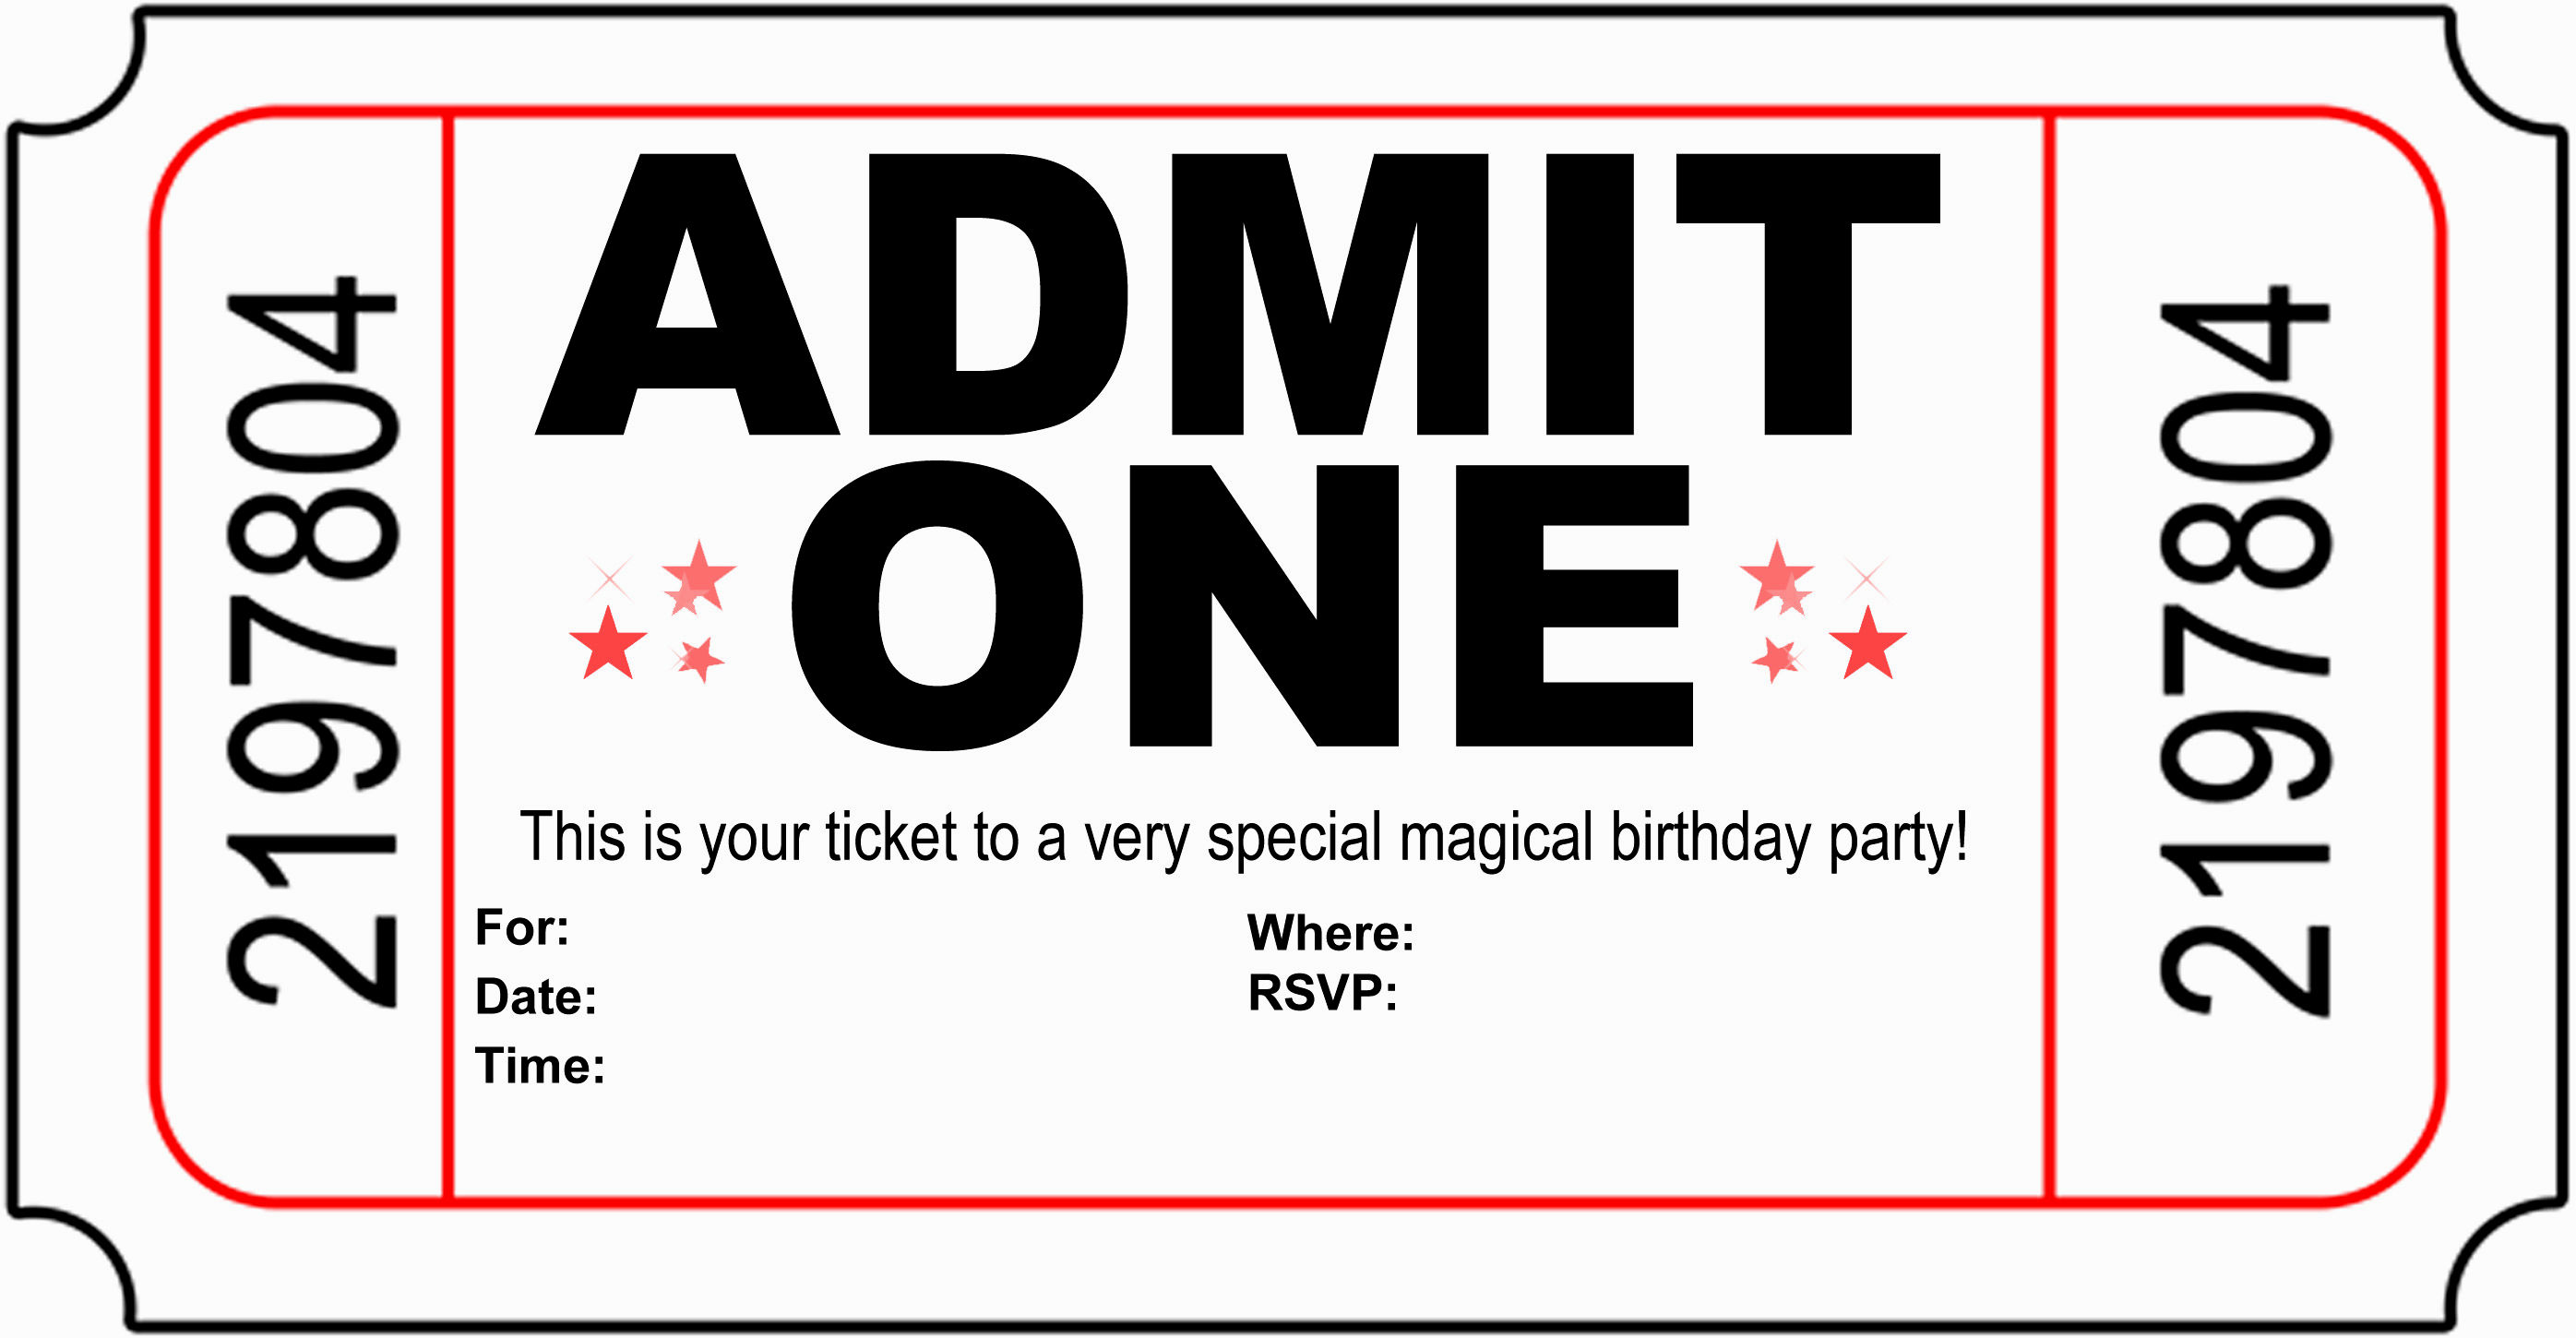 18th birthday invitations free printable templates ; 18Th-Birthday-Invitations-Free-Templates-to-inspire-you-how-to-create-the-birthday-Invitation-with-the-best-way-2